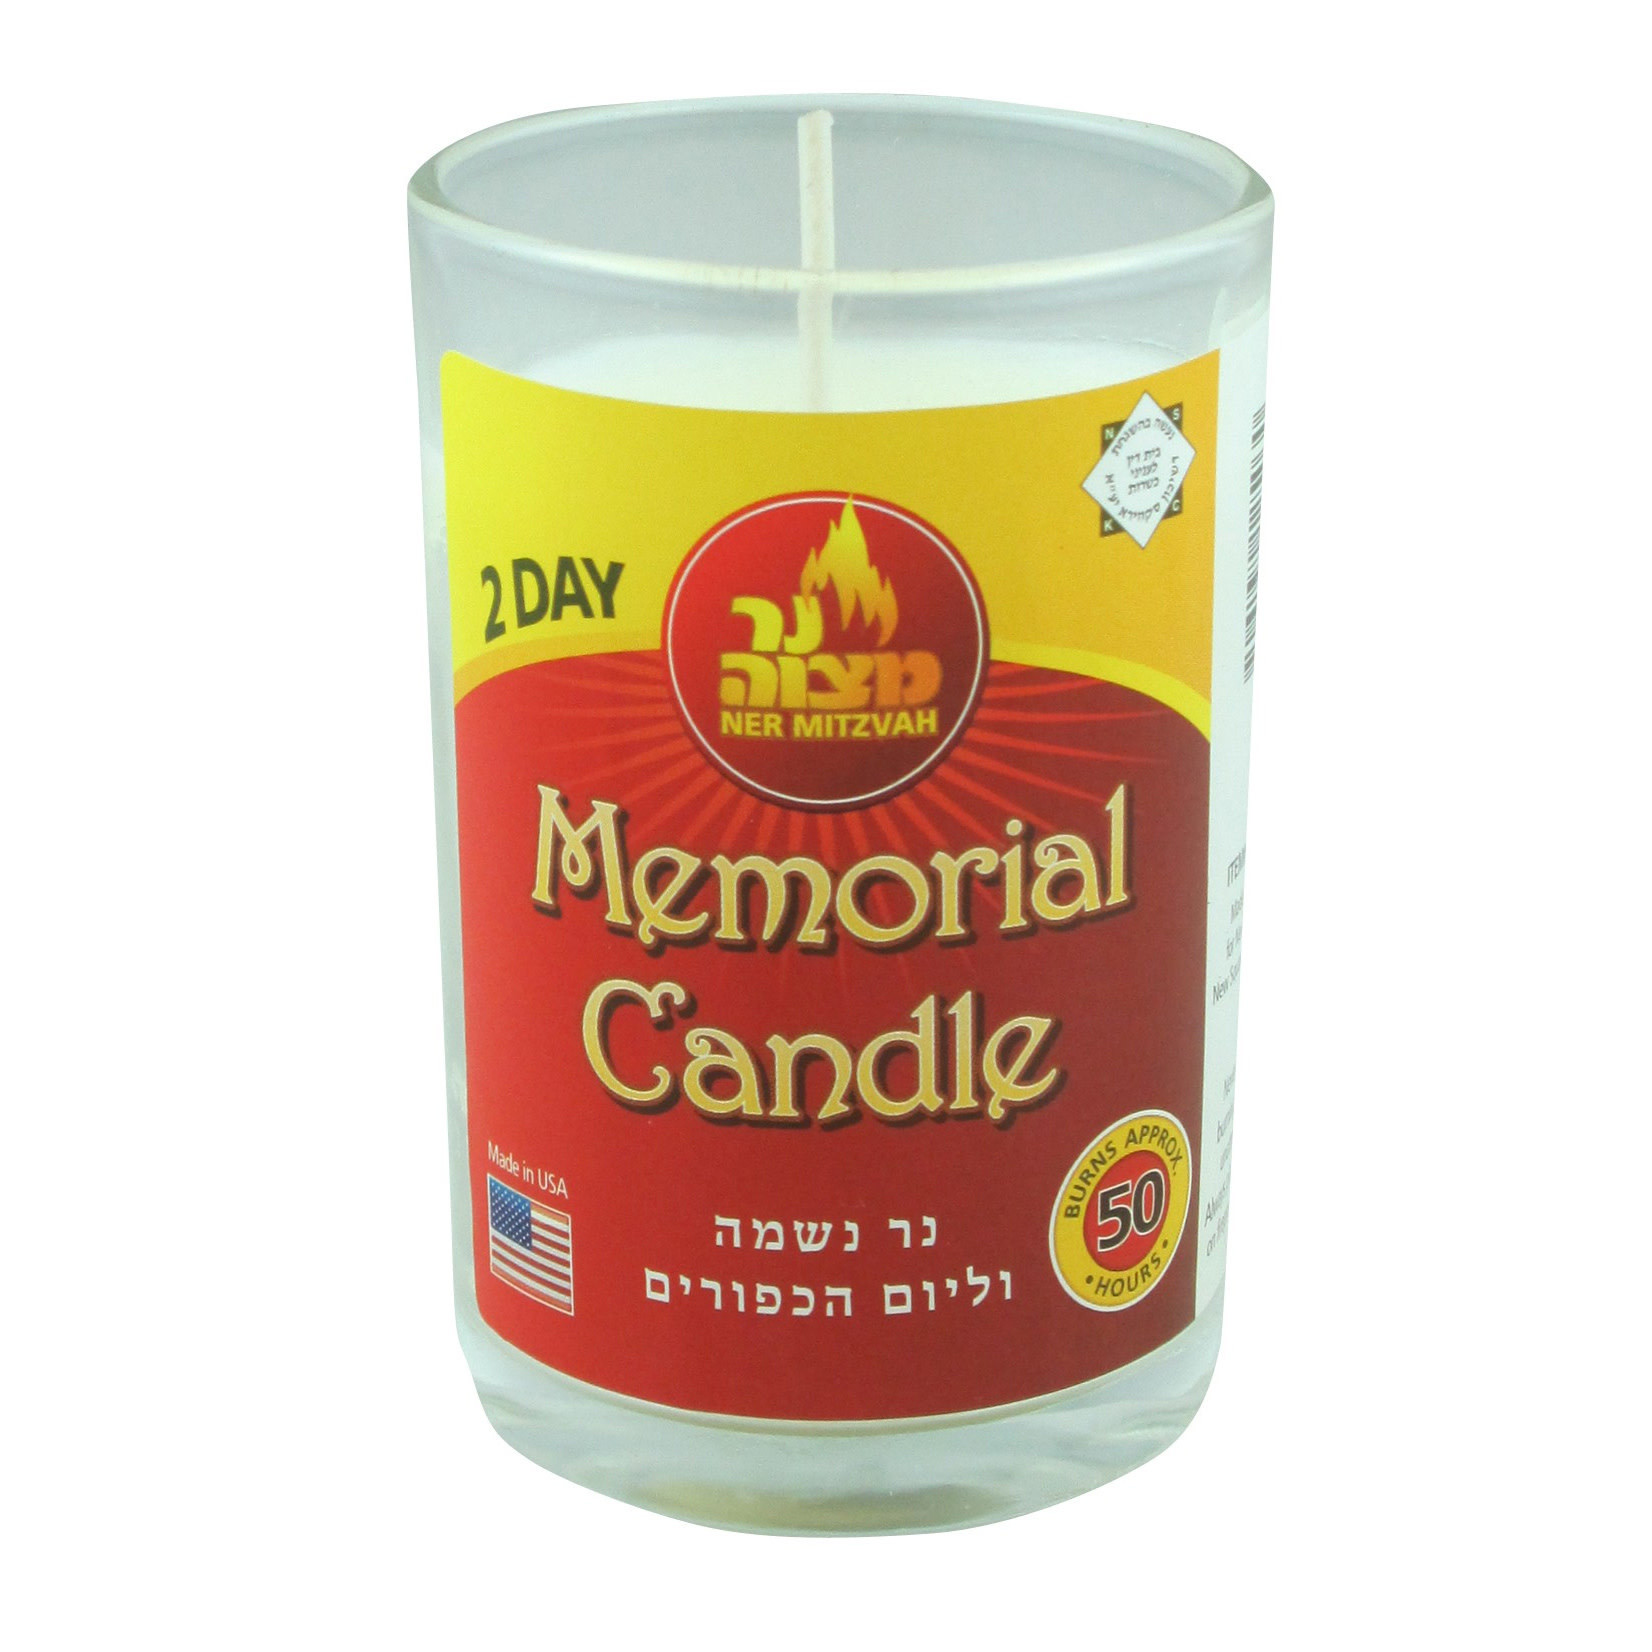 2-Day Yom Tov Candle in Glass Cup